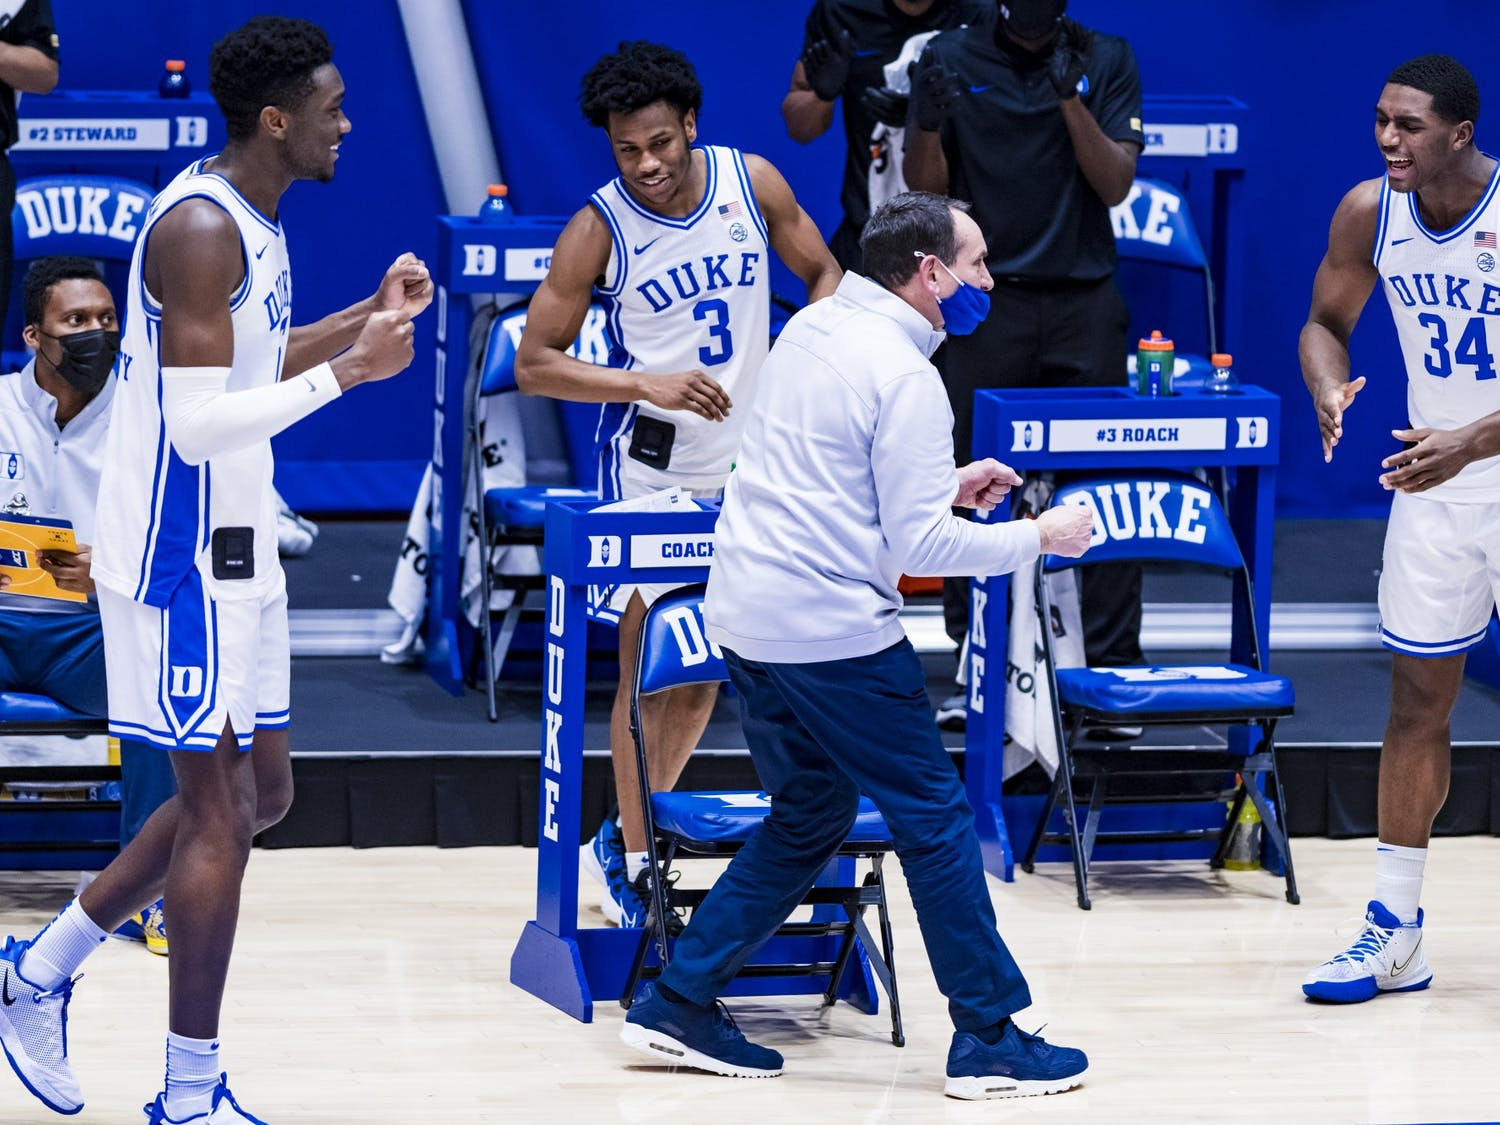 Duke Men's Basketball beats the Georgia Tech Yellow Jackets at the Cameron Indoor Stadium on January 26, 2020 at Durham, North Carolina. Photo courtesy of Natalie Ledonne.